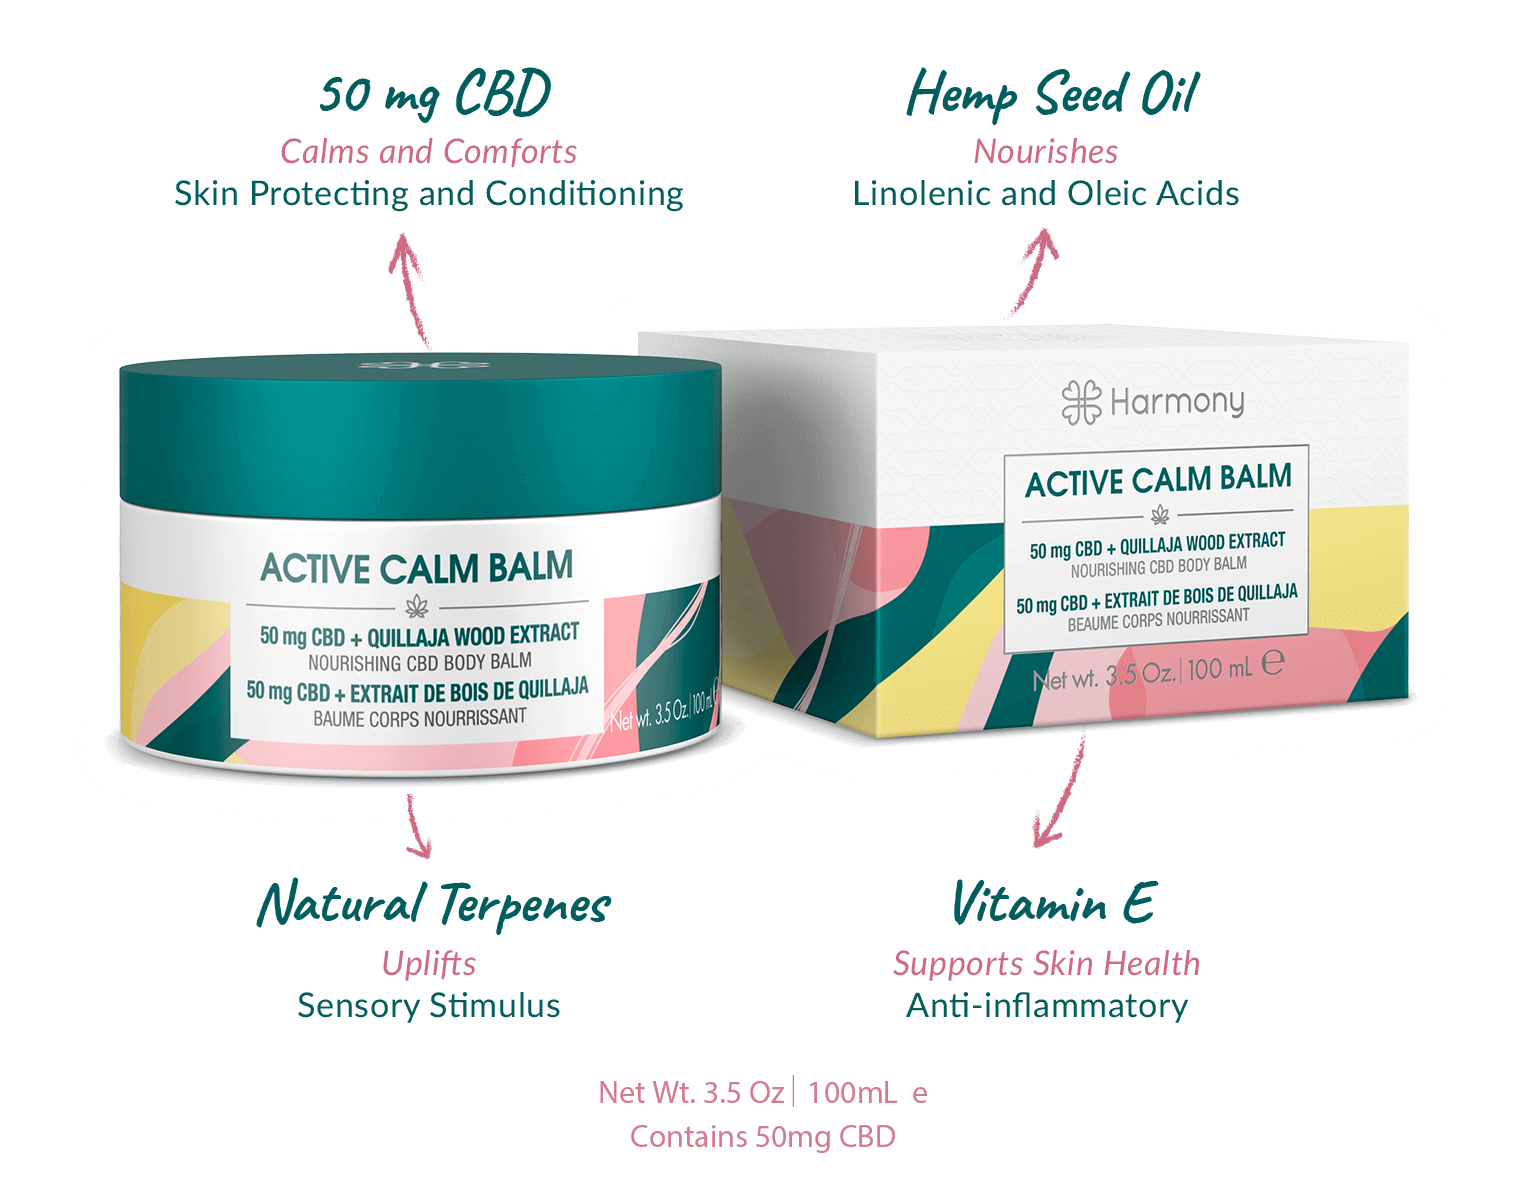 What is in active calm balm CBD skincare